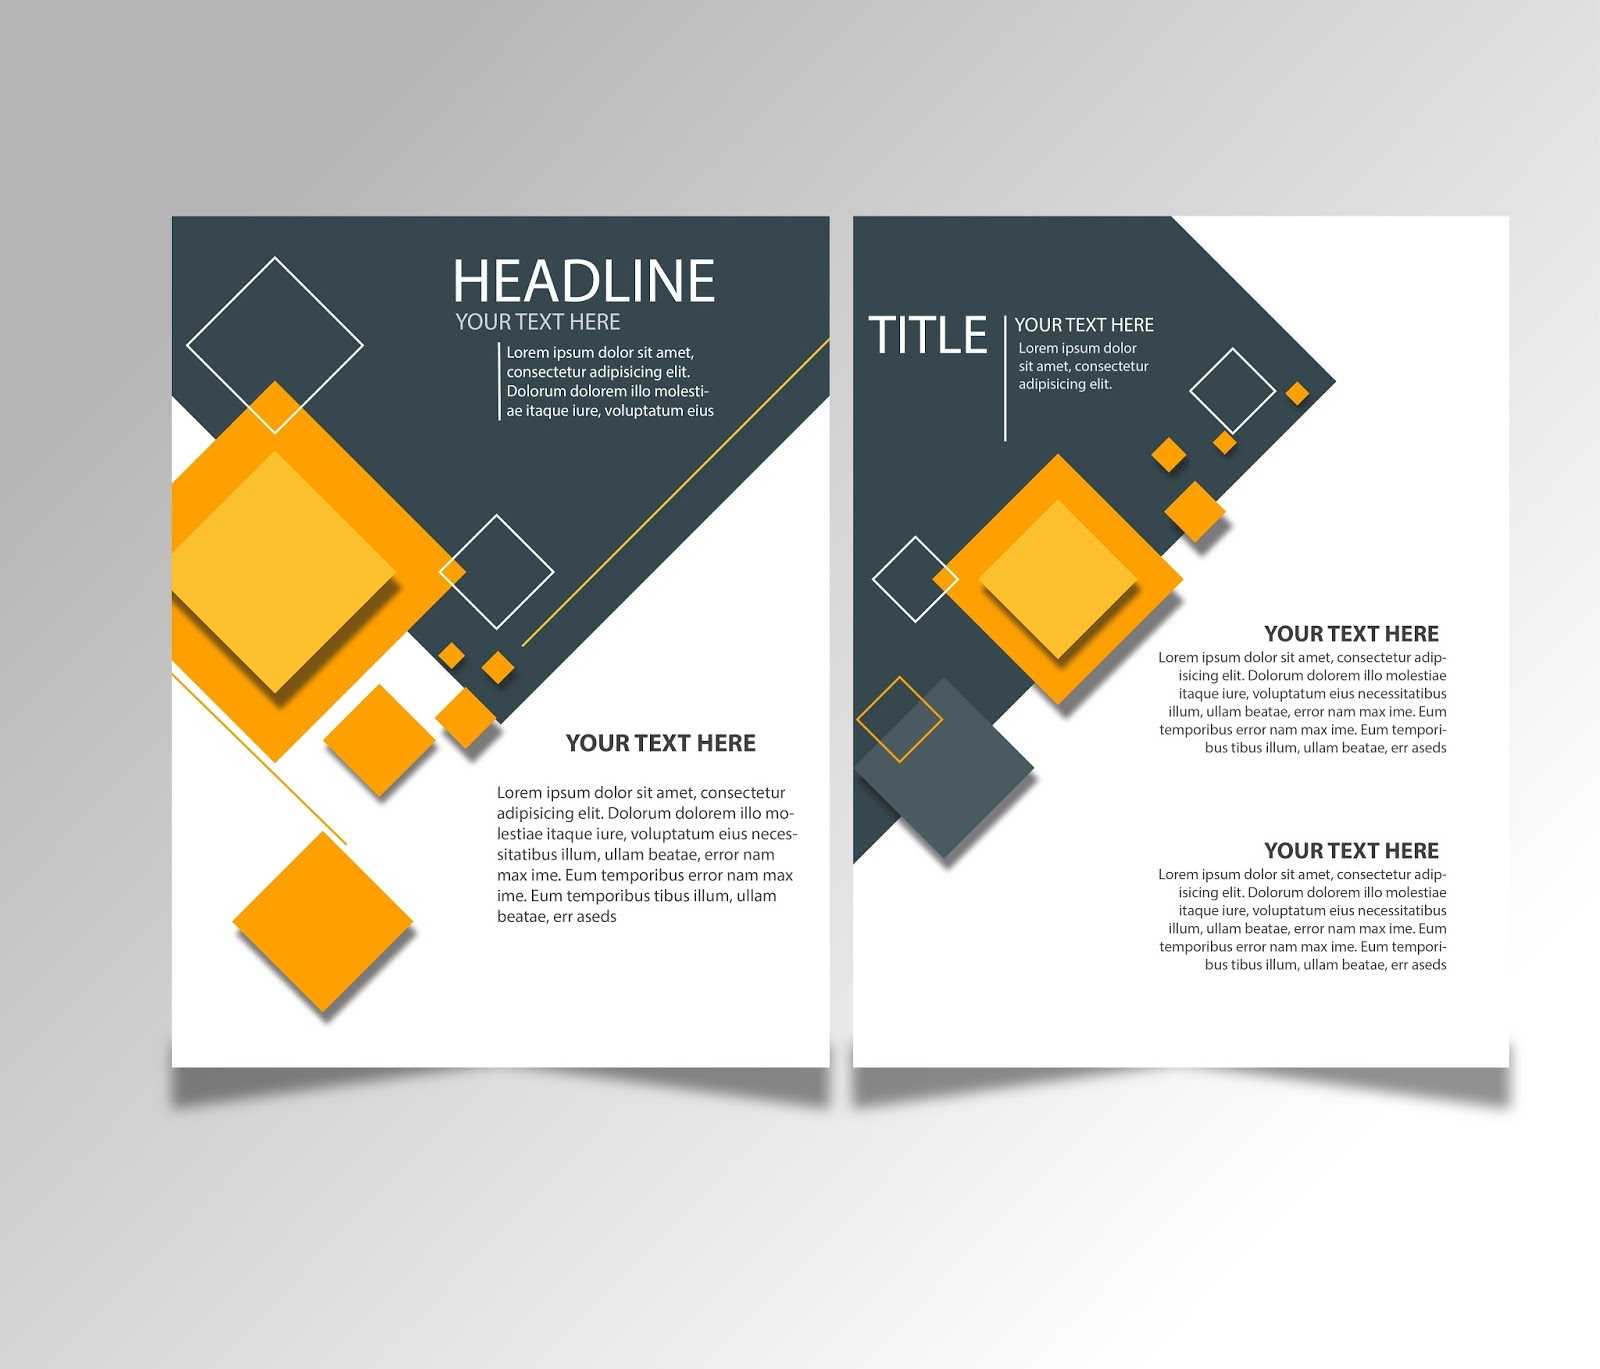 Free Download Brochure Design Templates Ai Files - Ideosprocess Regarding Creative Brochure Templates Free Download